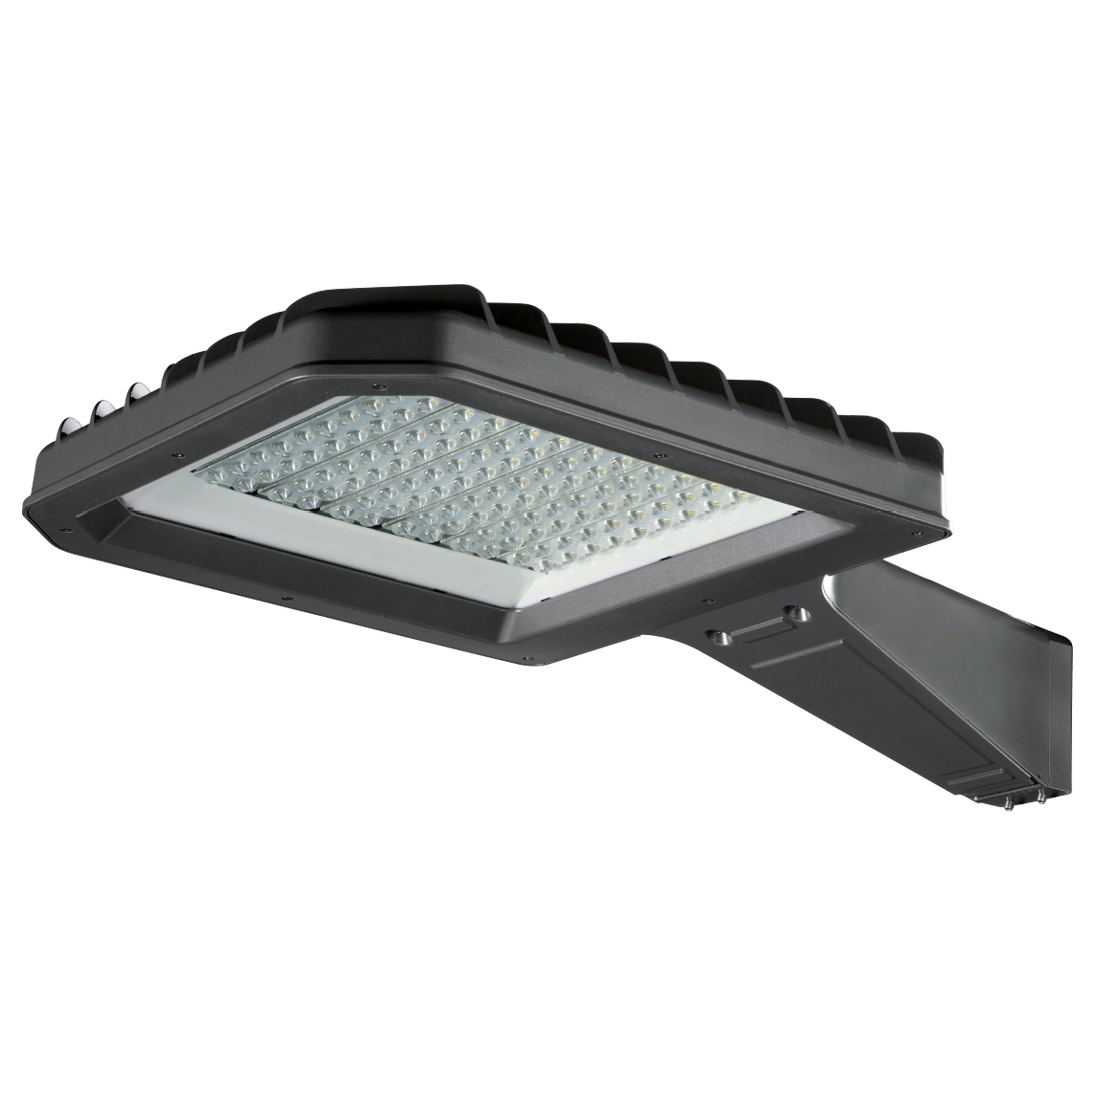 Atlas Lighting SLP22270LEDT54KU ATL SLP22270LEDT54KU